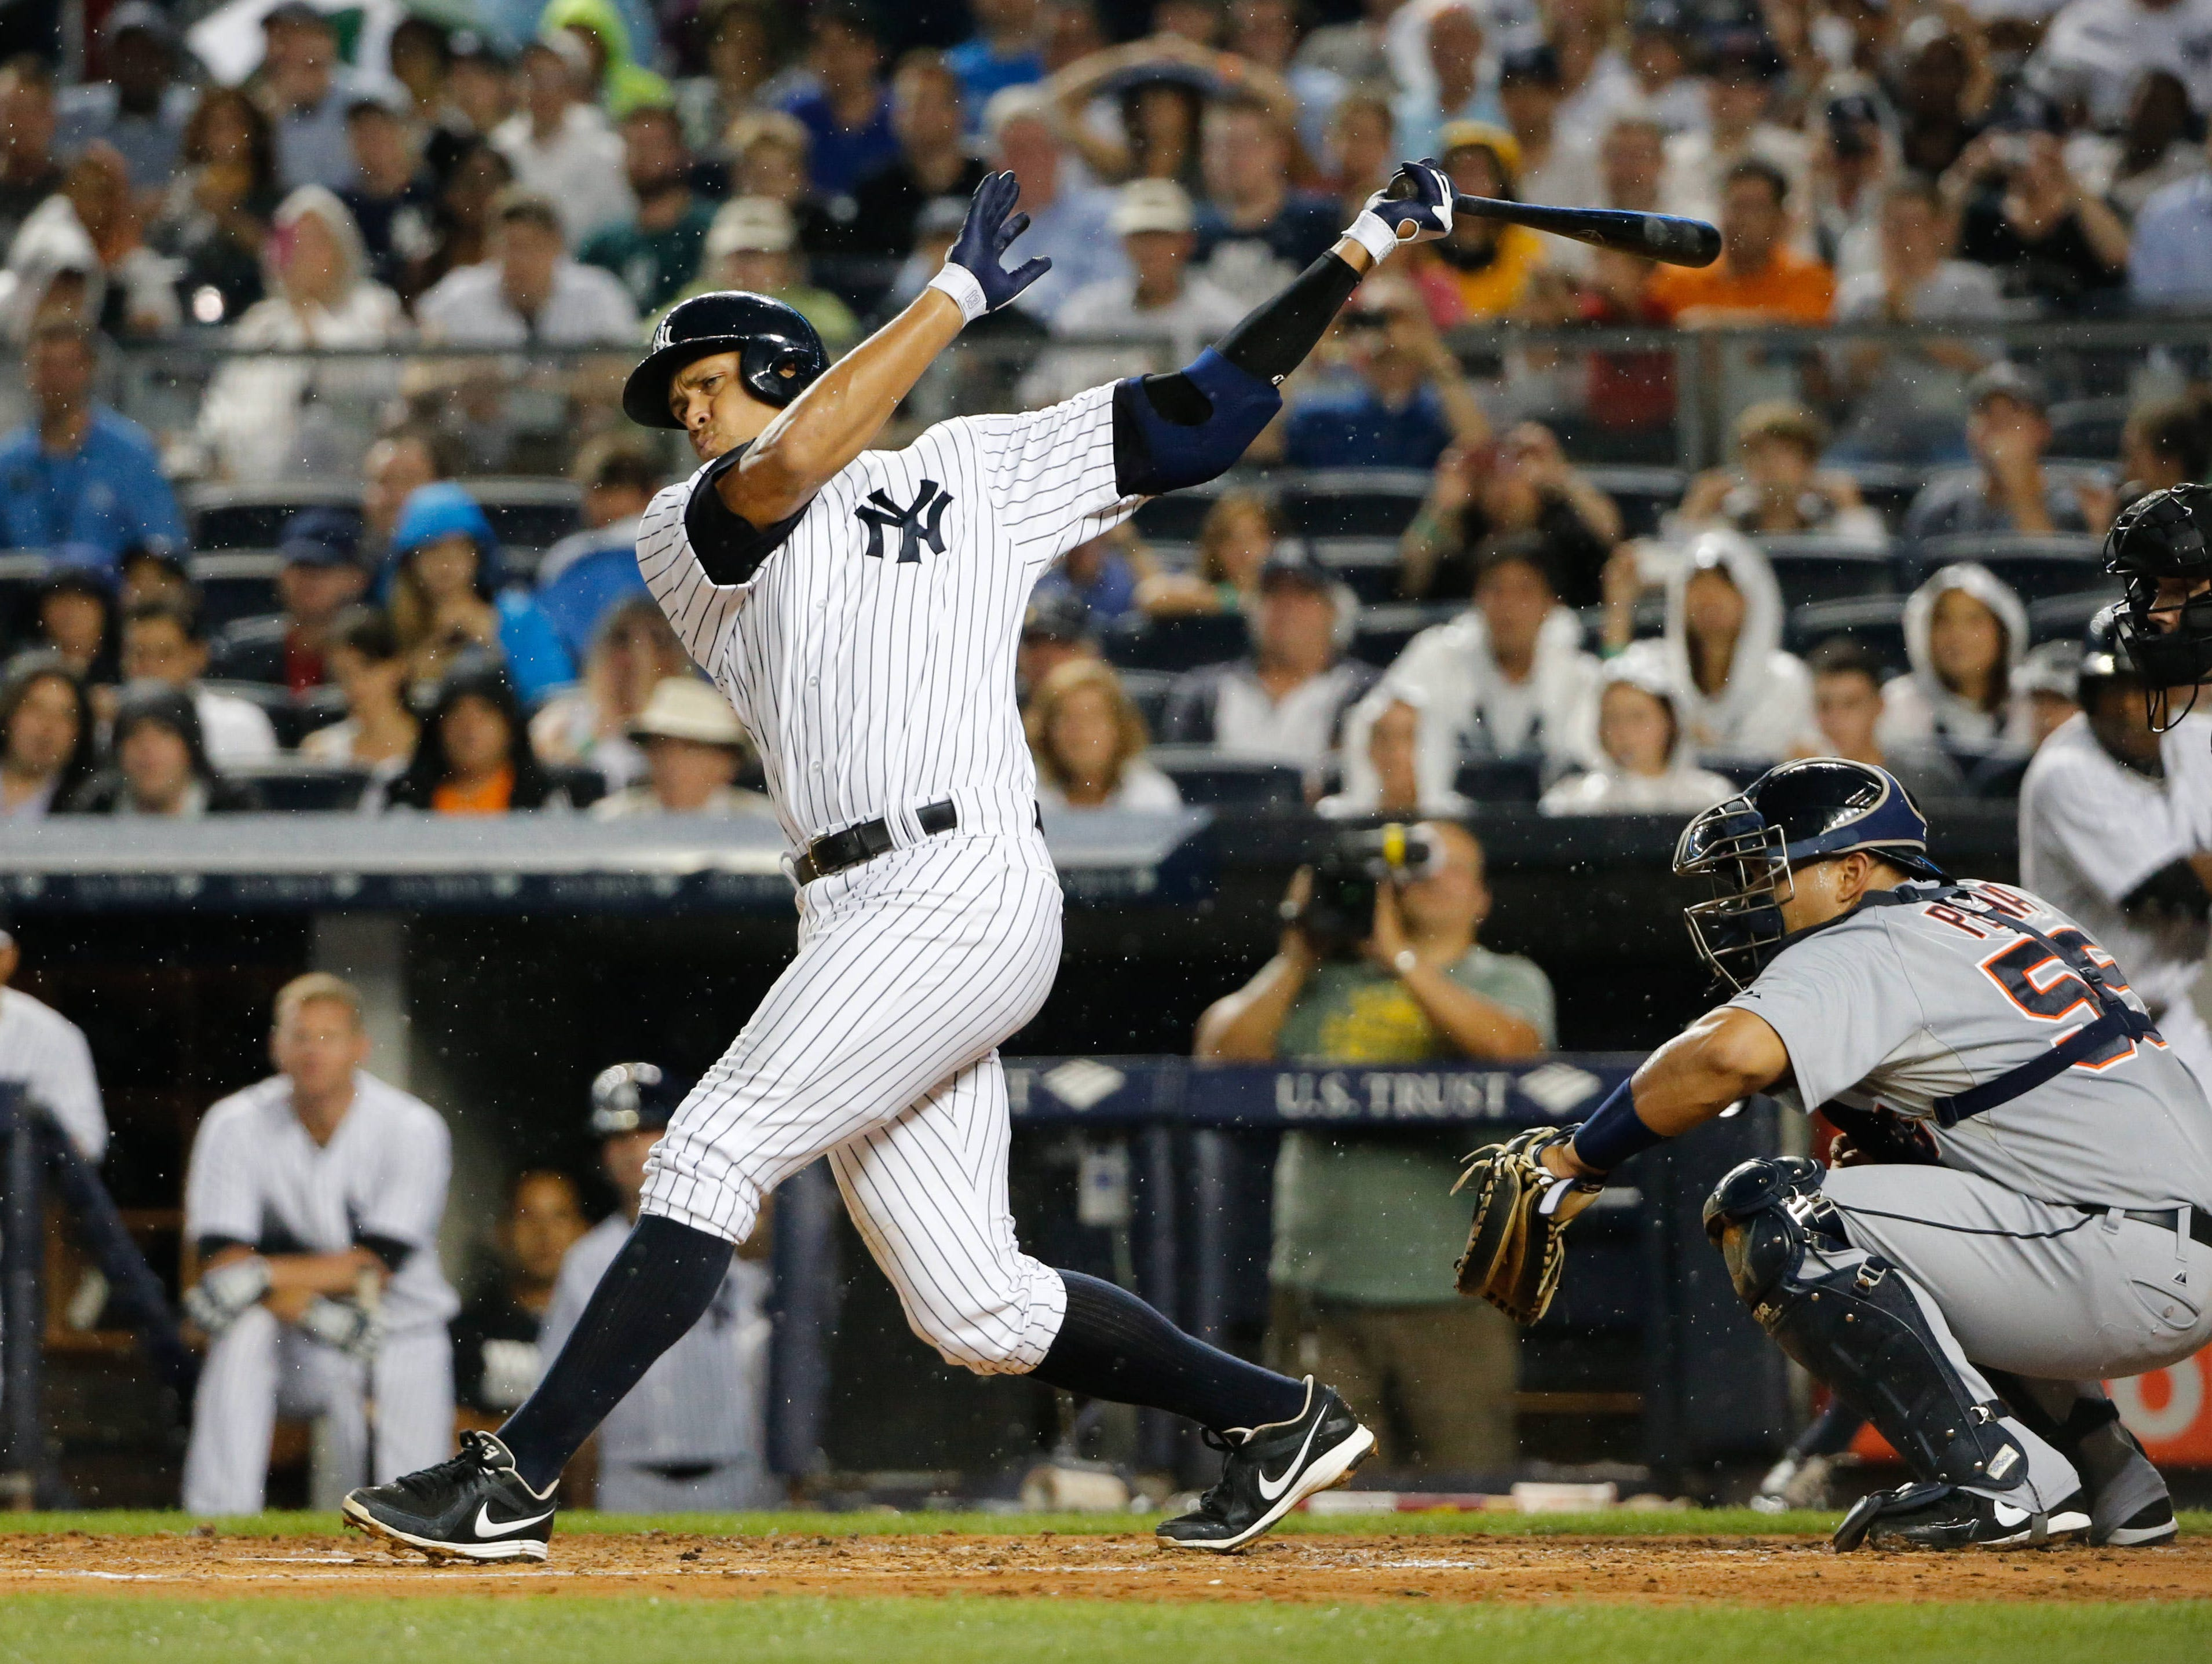 Alex Rodriguez goes 0-for-4 with three strikeouts in his season debut at Yankee Stadium on Aug. 9.